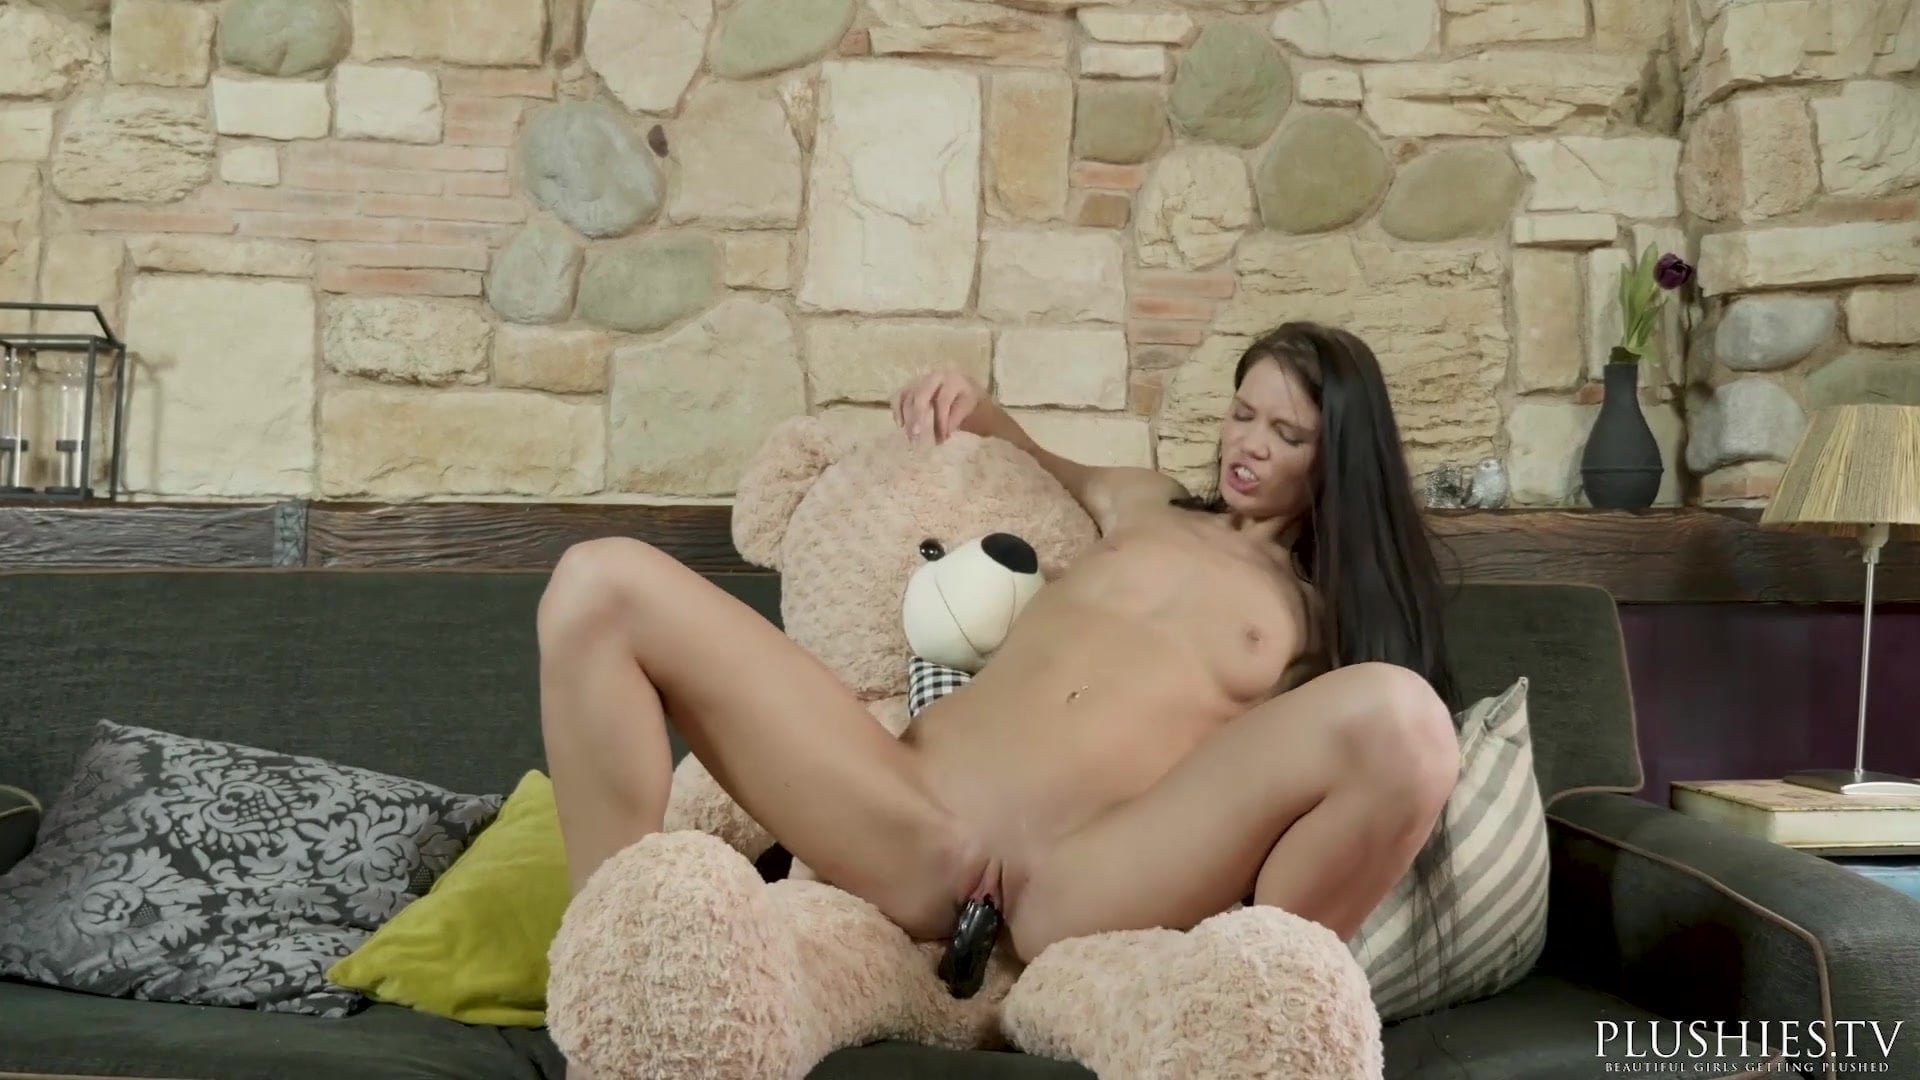 Girl having sex with plushie